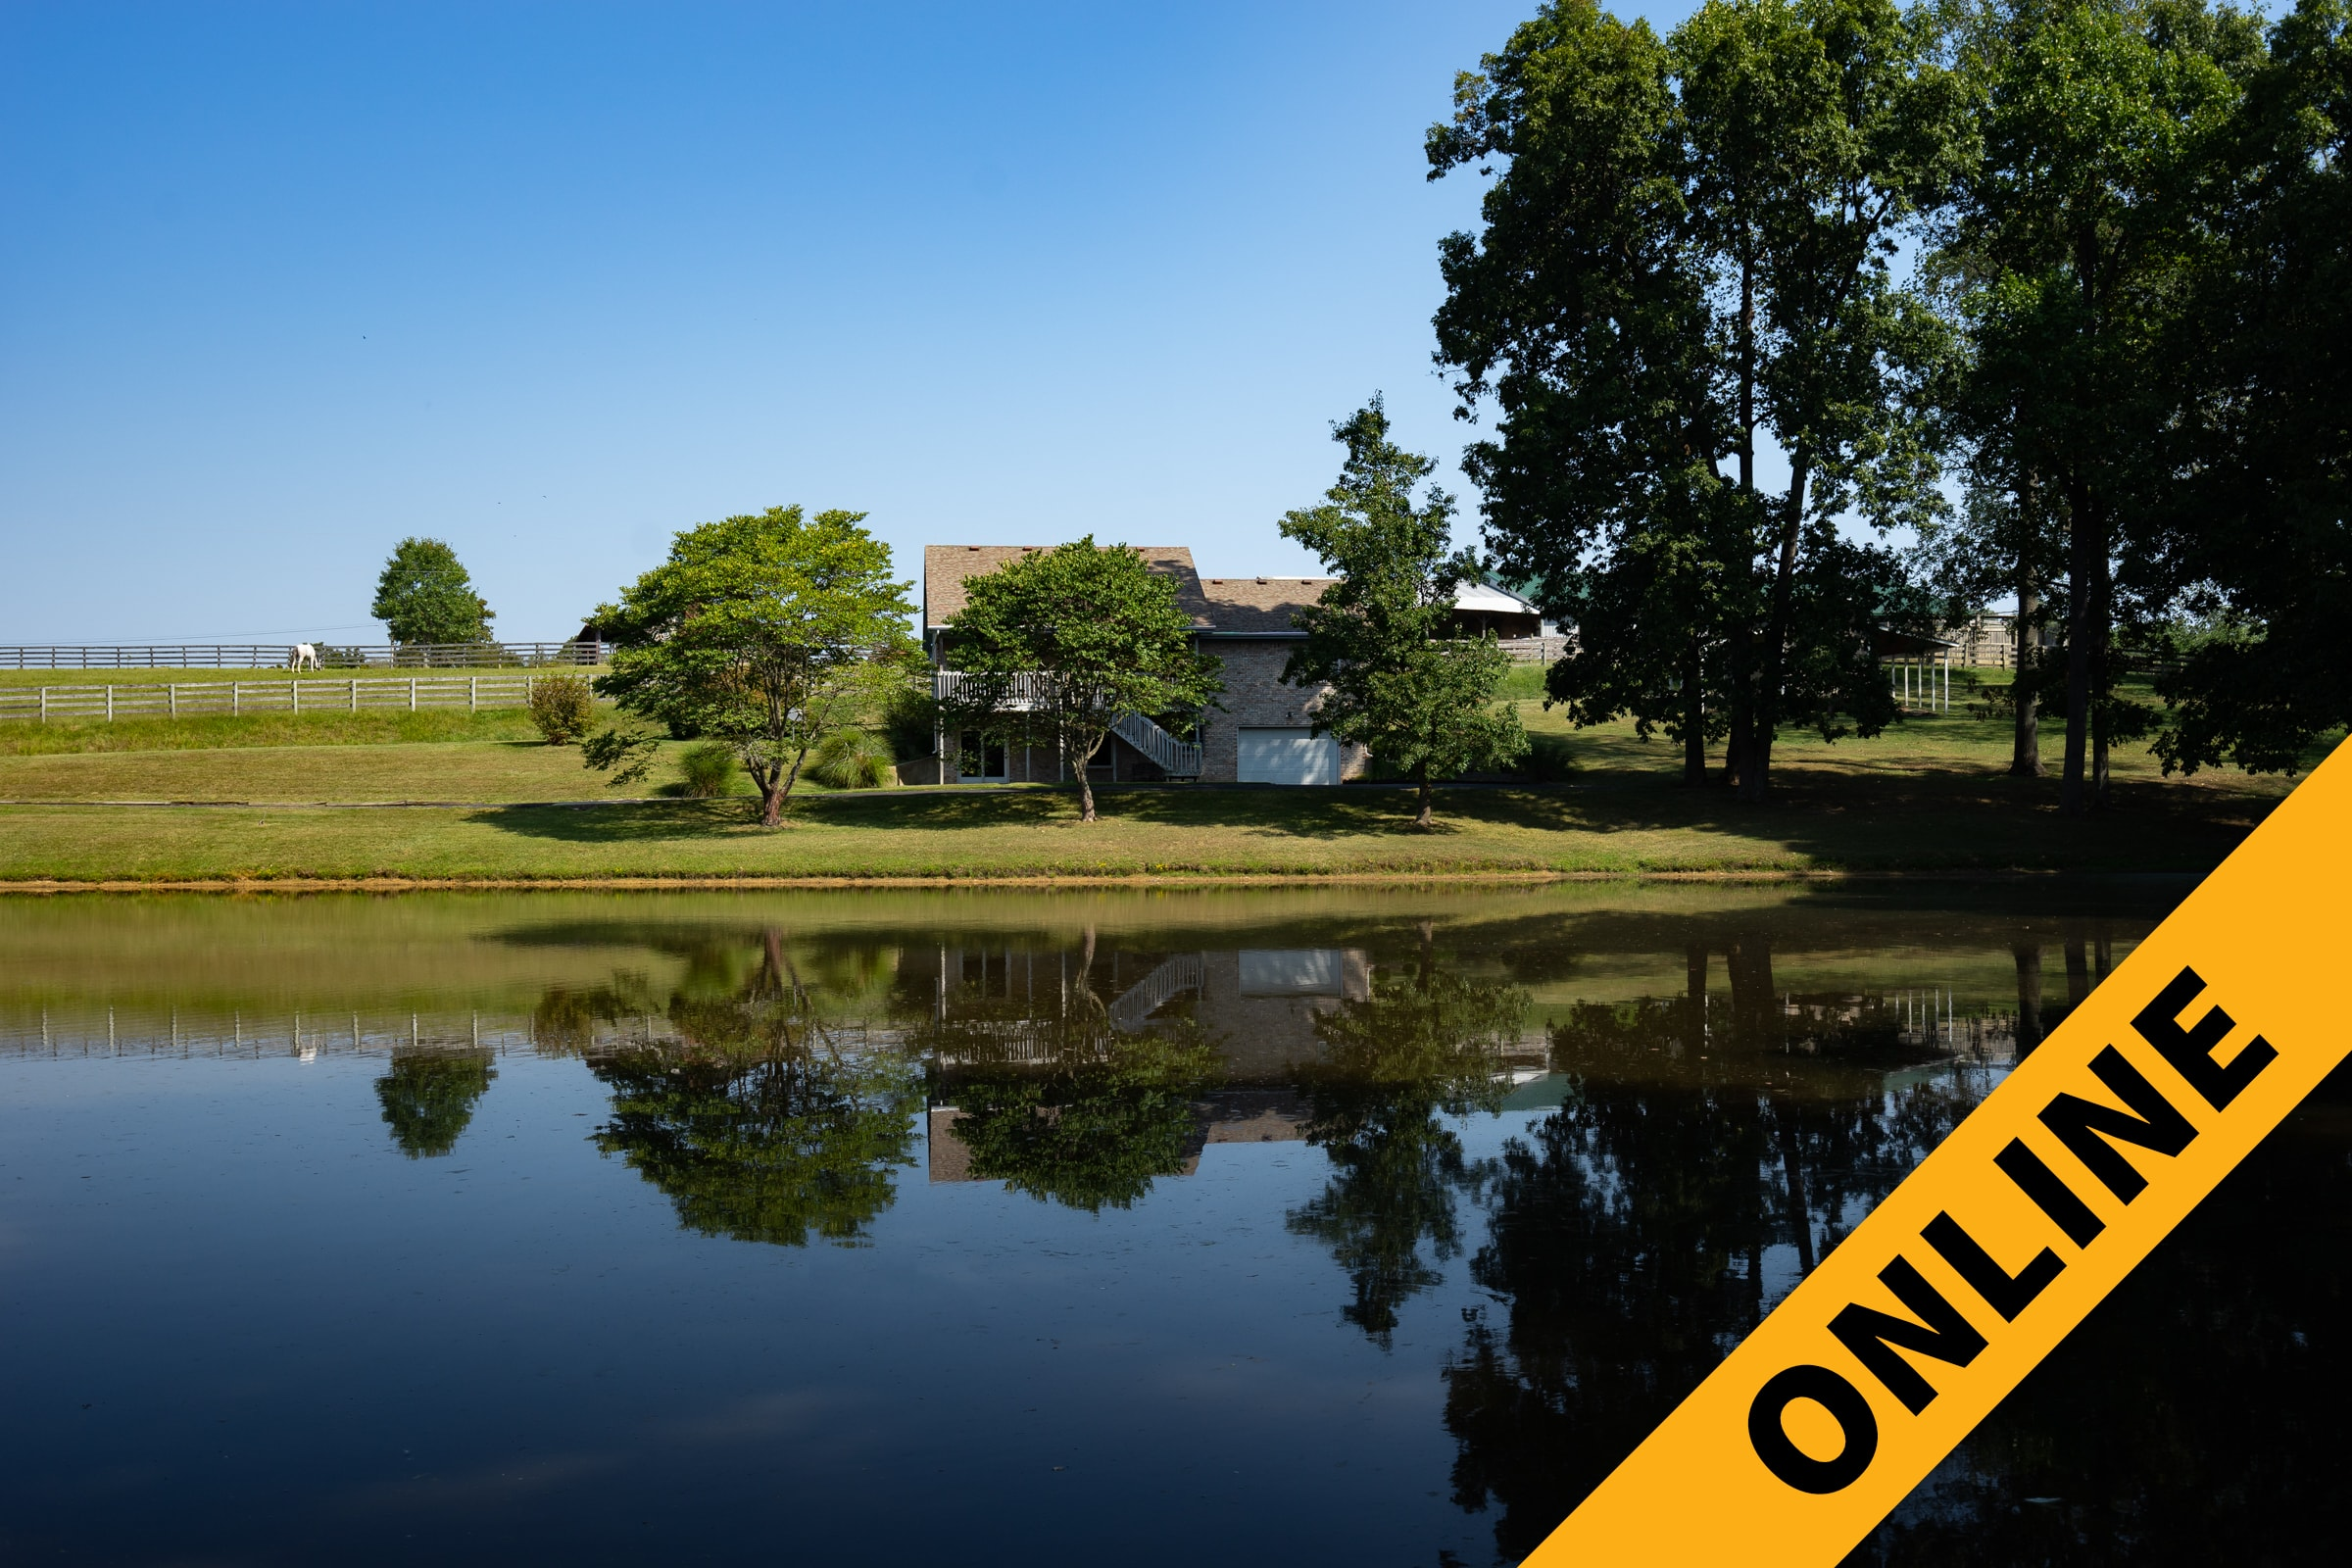 Seven Acres, Lake & Home Online Auction